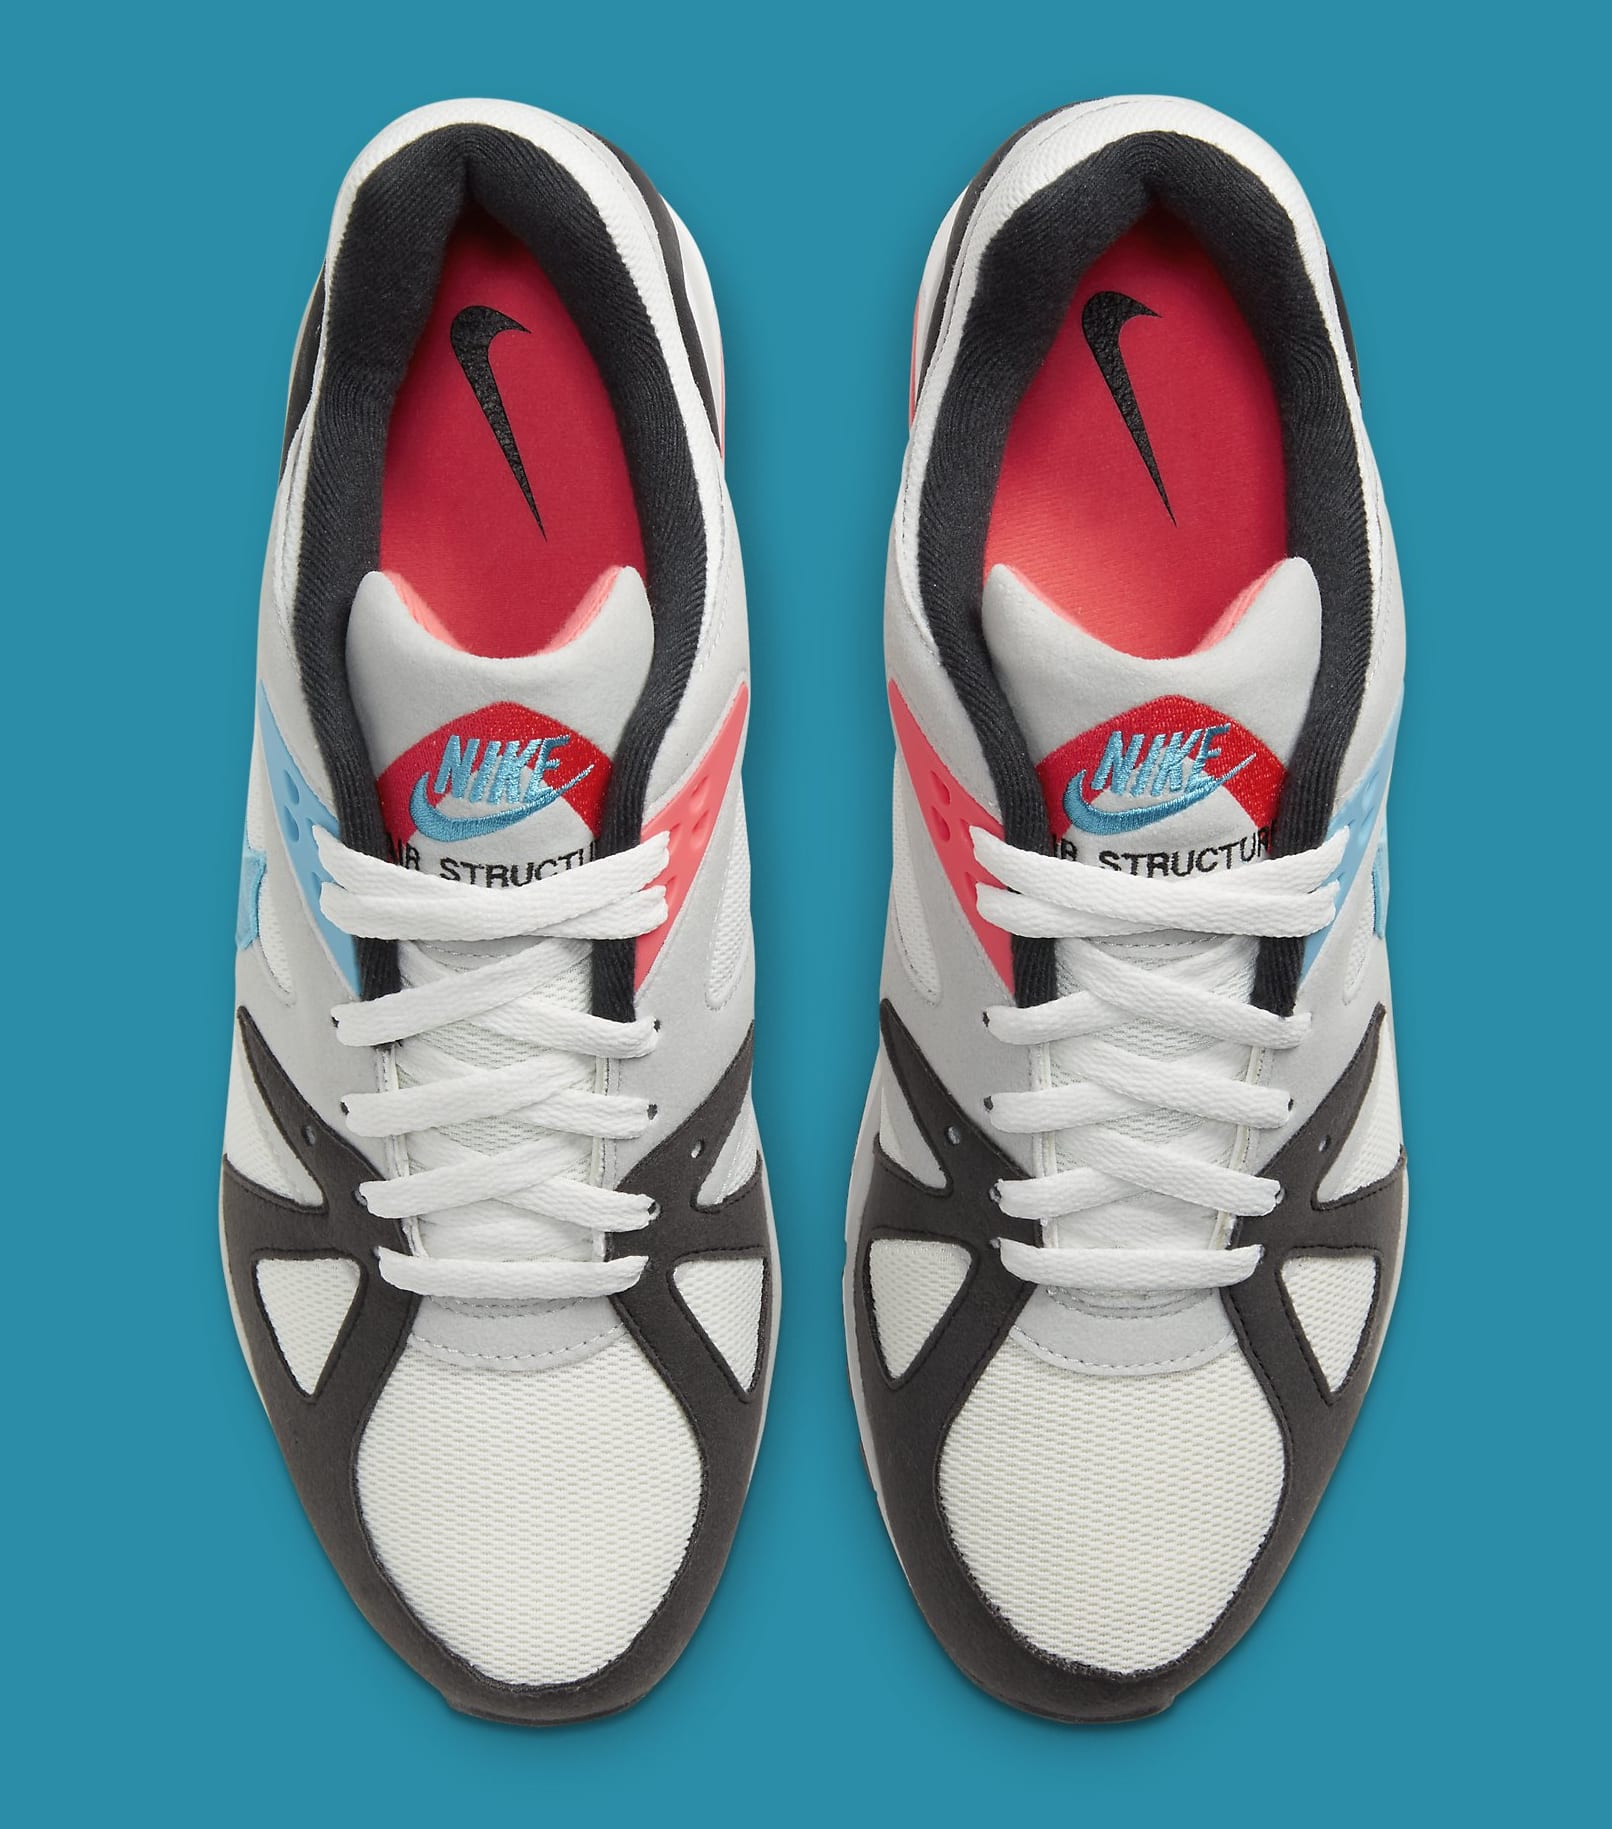 Nike Air Structure Triax 91 'Neo Teal/Infrared' CV3492-100 Top